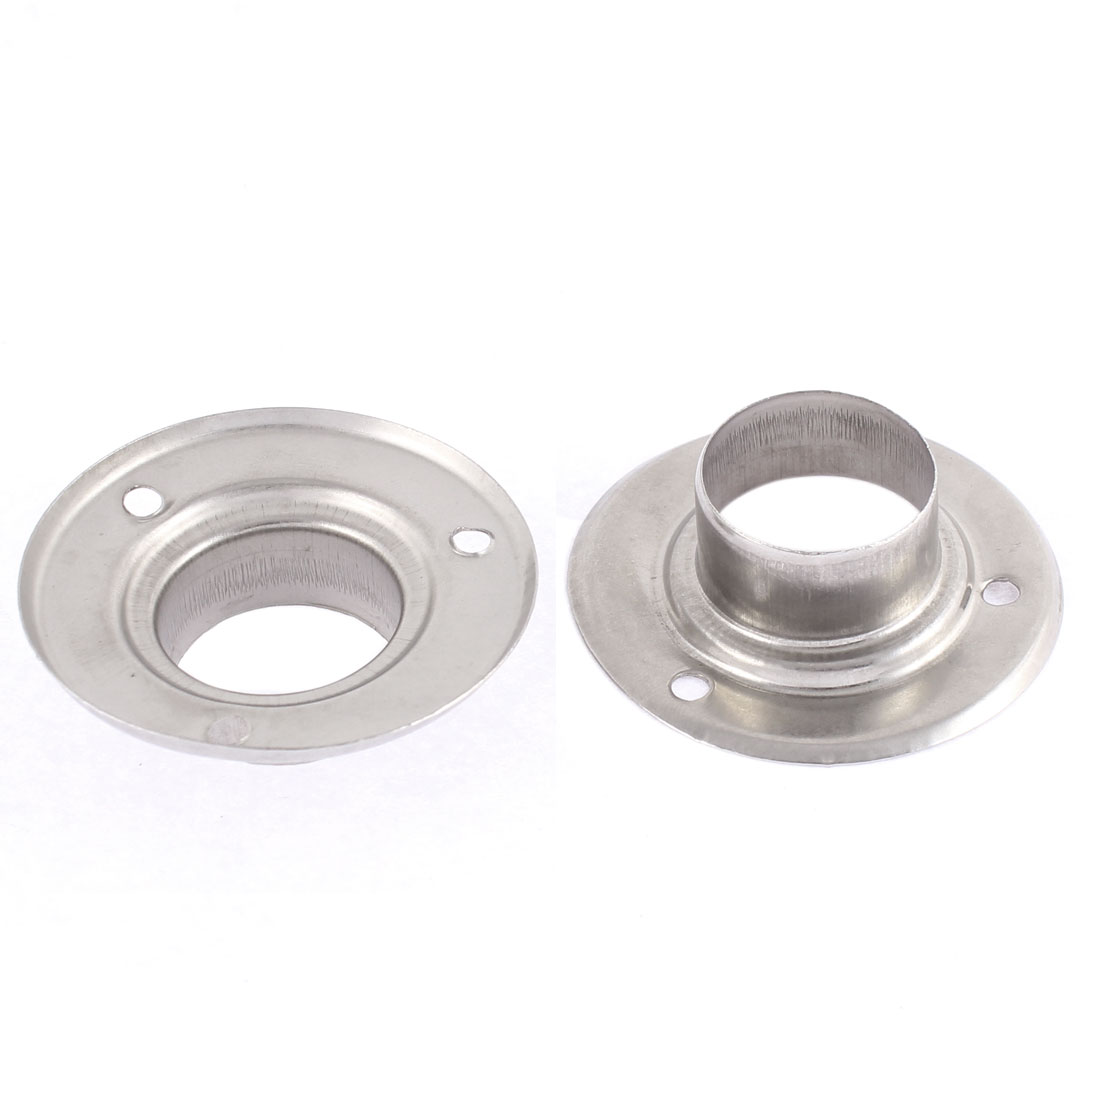 56mm x 17mm Stainless Steel Clothes Lever Socket Tube Weld Neck Flange 2 Pcs